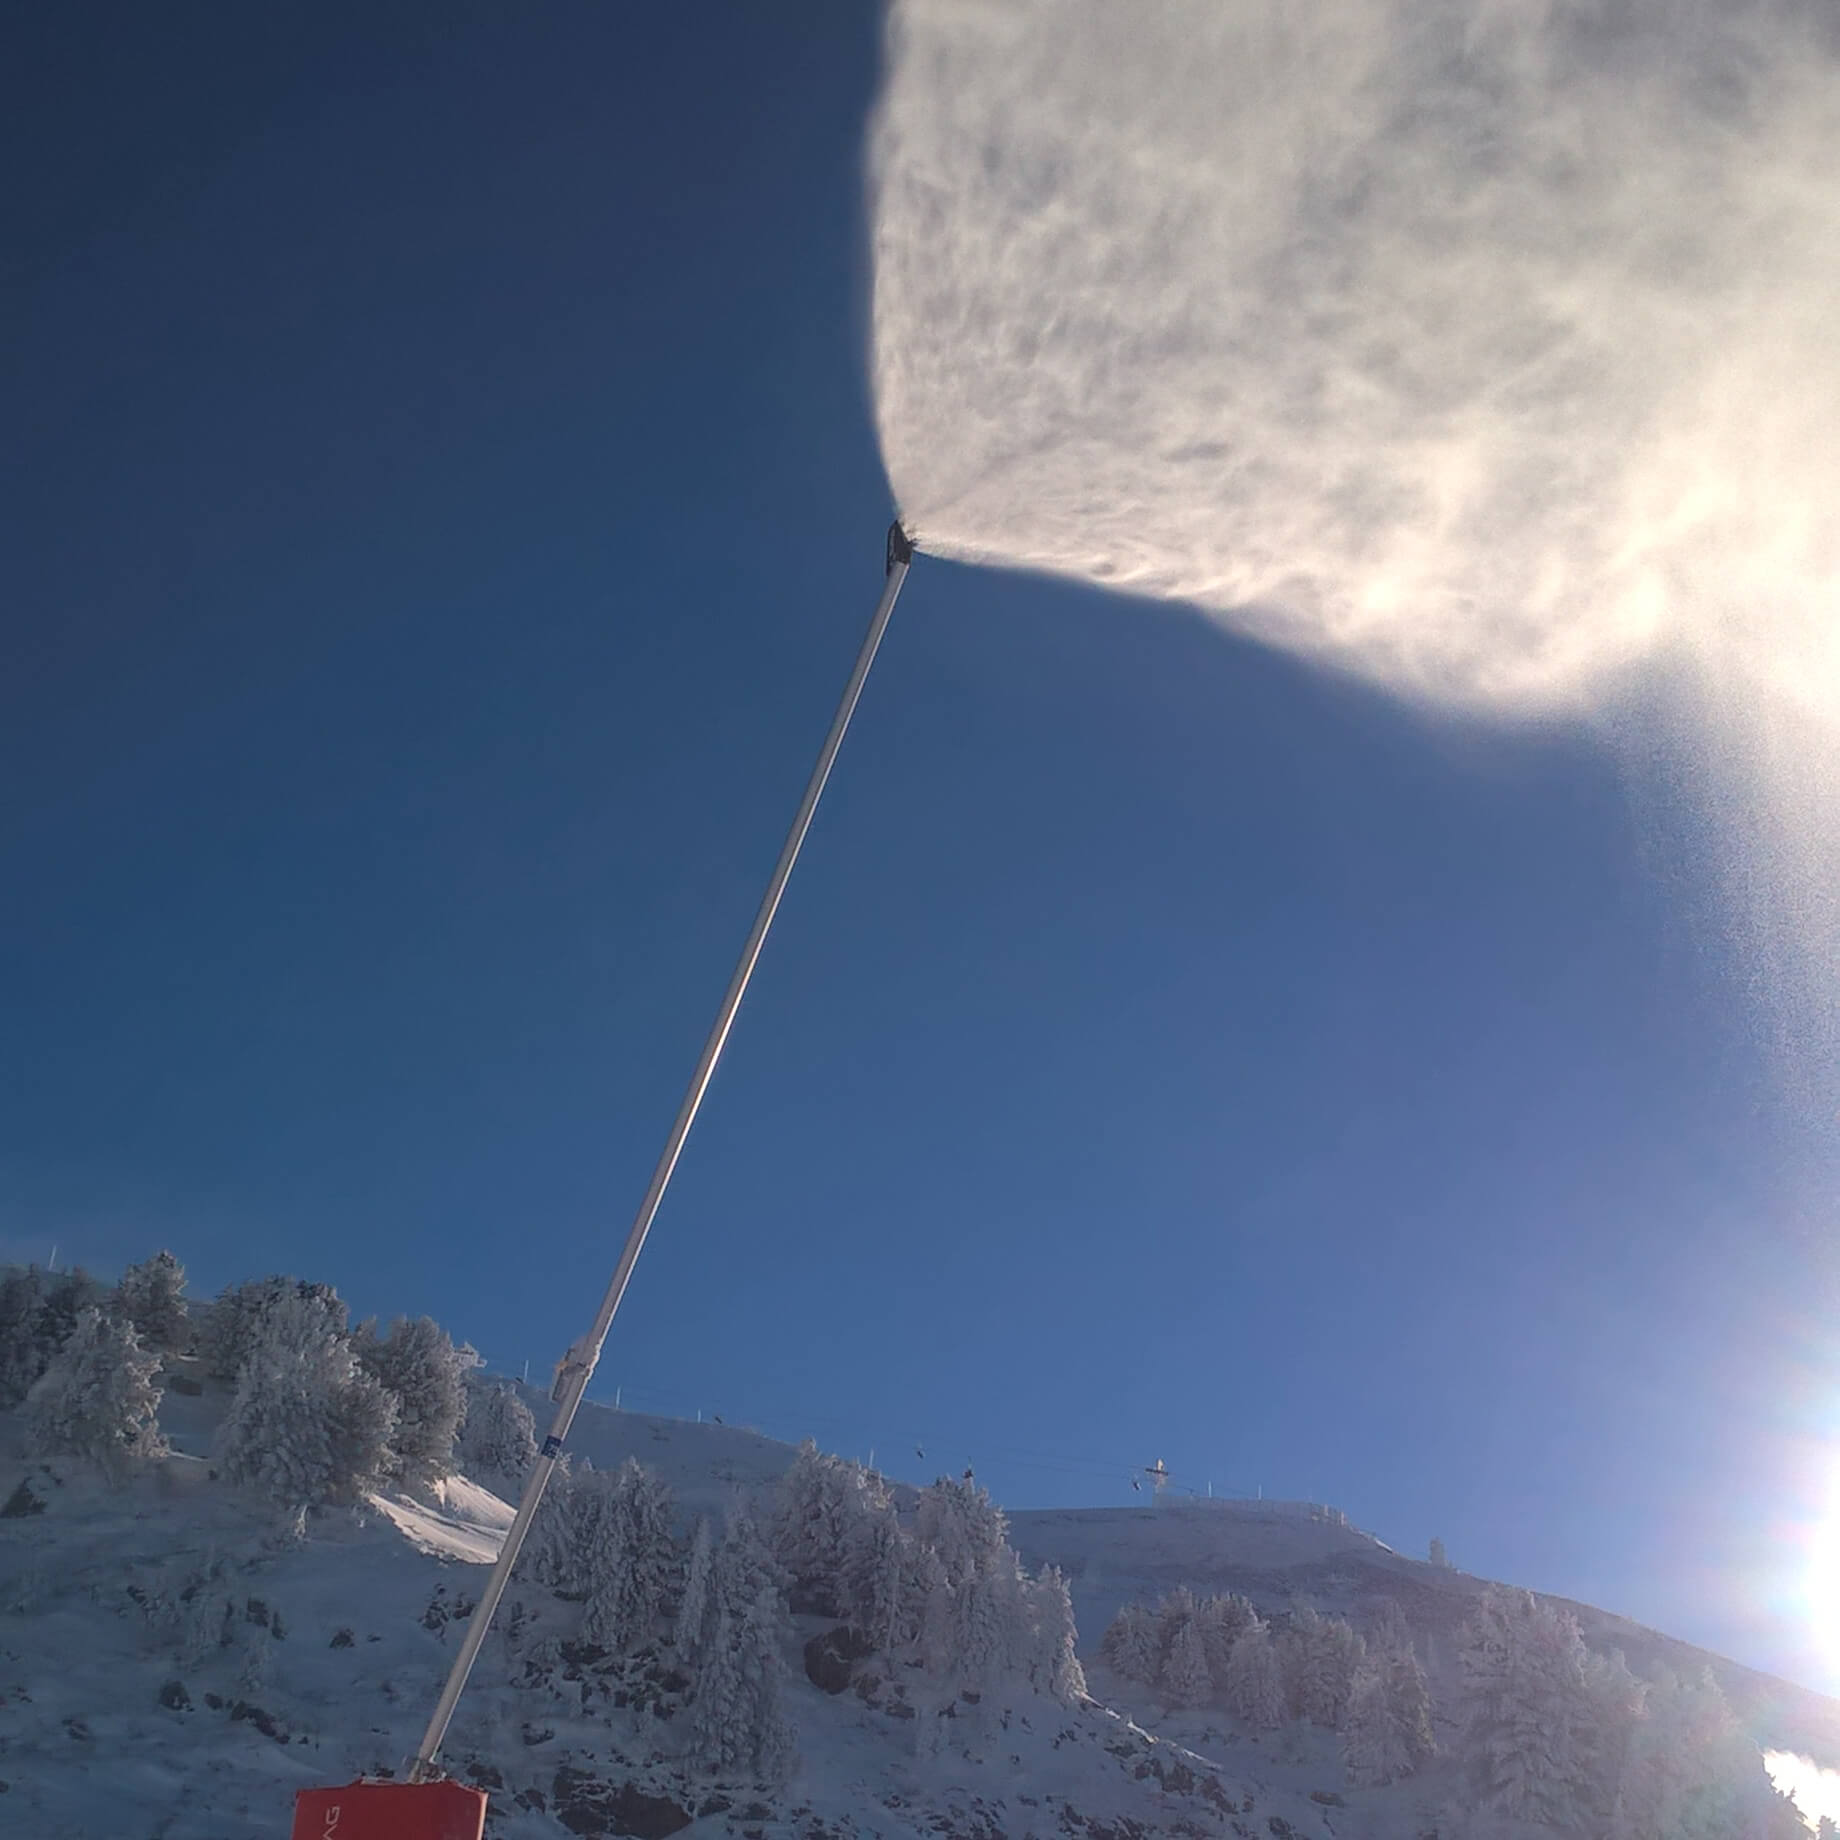 SNOW_CHAMROUSSE_content2